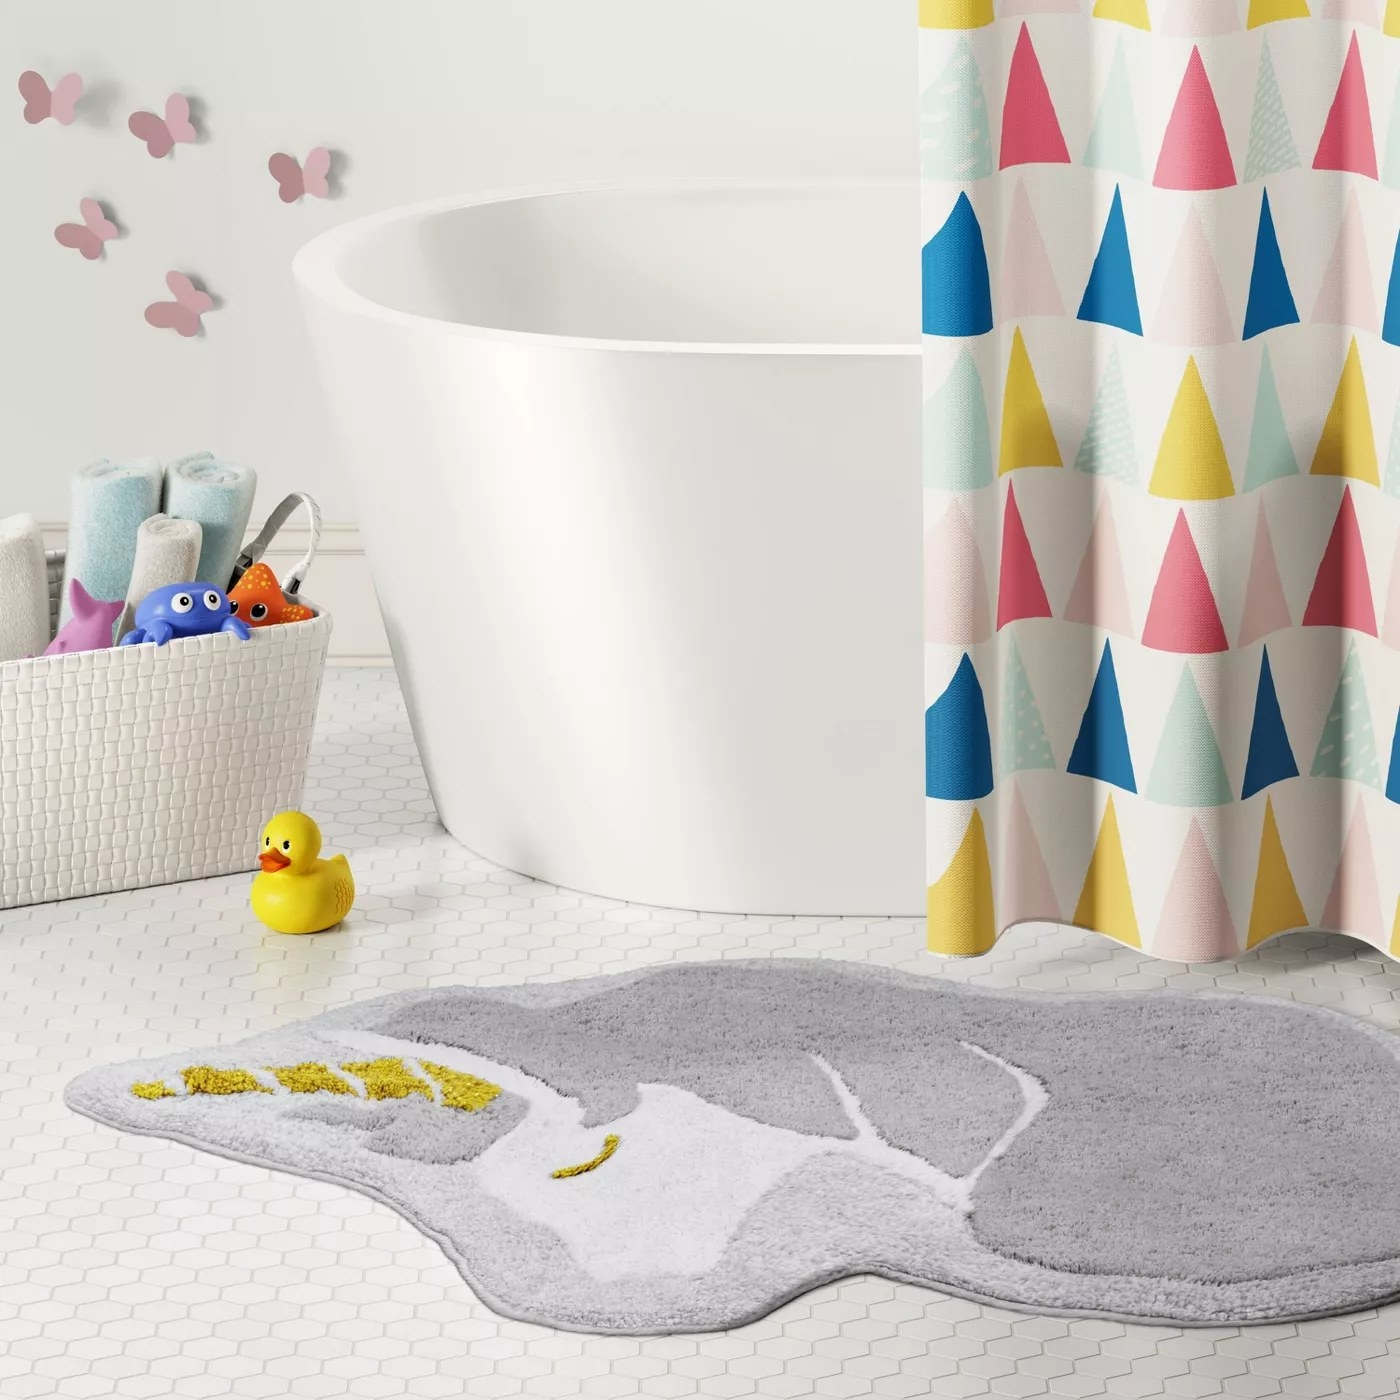 The unicorn bath rug